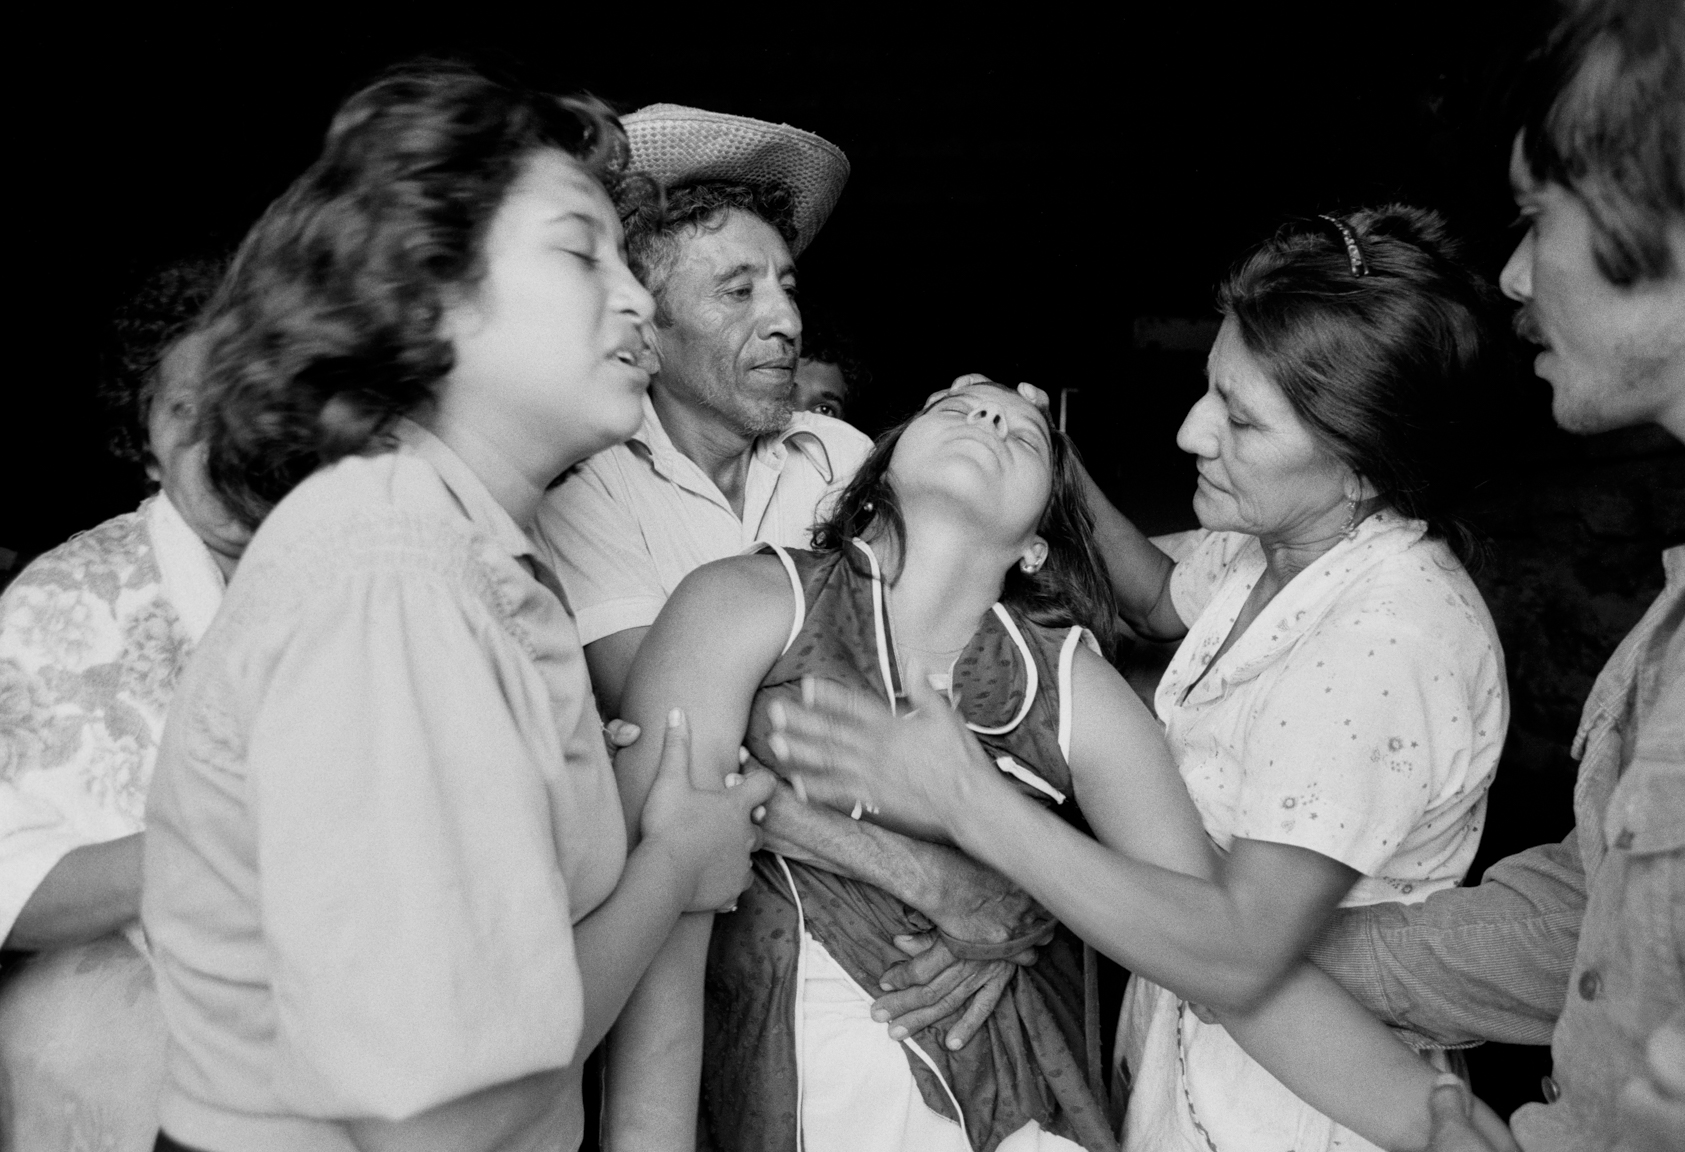 The sister of a civil defenseman, center, faints after hearing about the death of her brother during an overnight attack July 1982 on the brother's military post in Santa Clara, El Salvador. Guerrillas from the FMLN attacked overnight killing 6 civil defensemen before Salvadoran army soldiers arrived the next morning retaking the town, 50 kms from the capital, San Salvador.